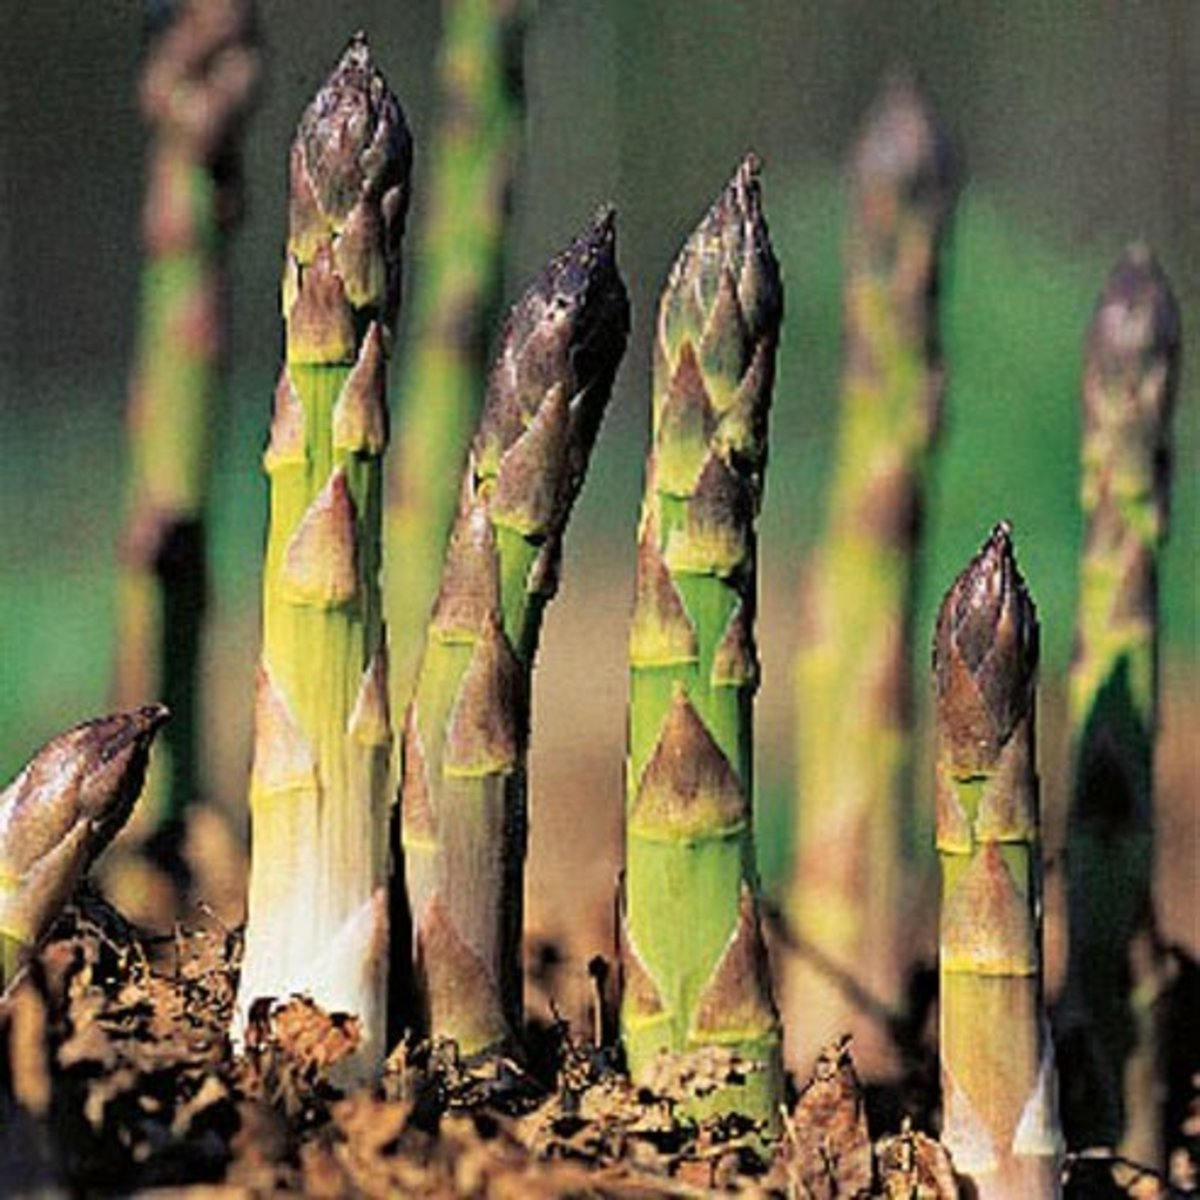 How to Plant Two-Year-Old Asparagus Crowns in Containers